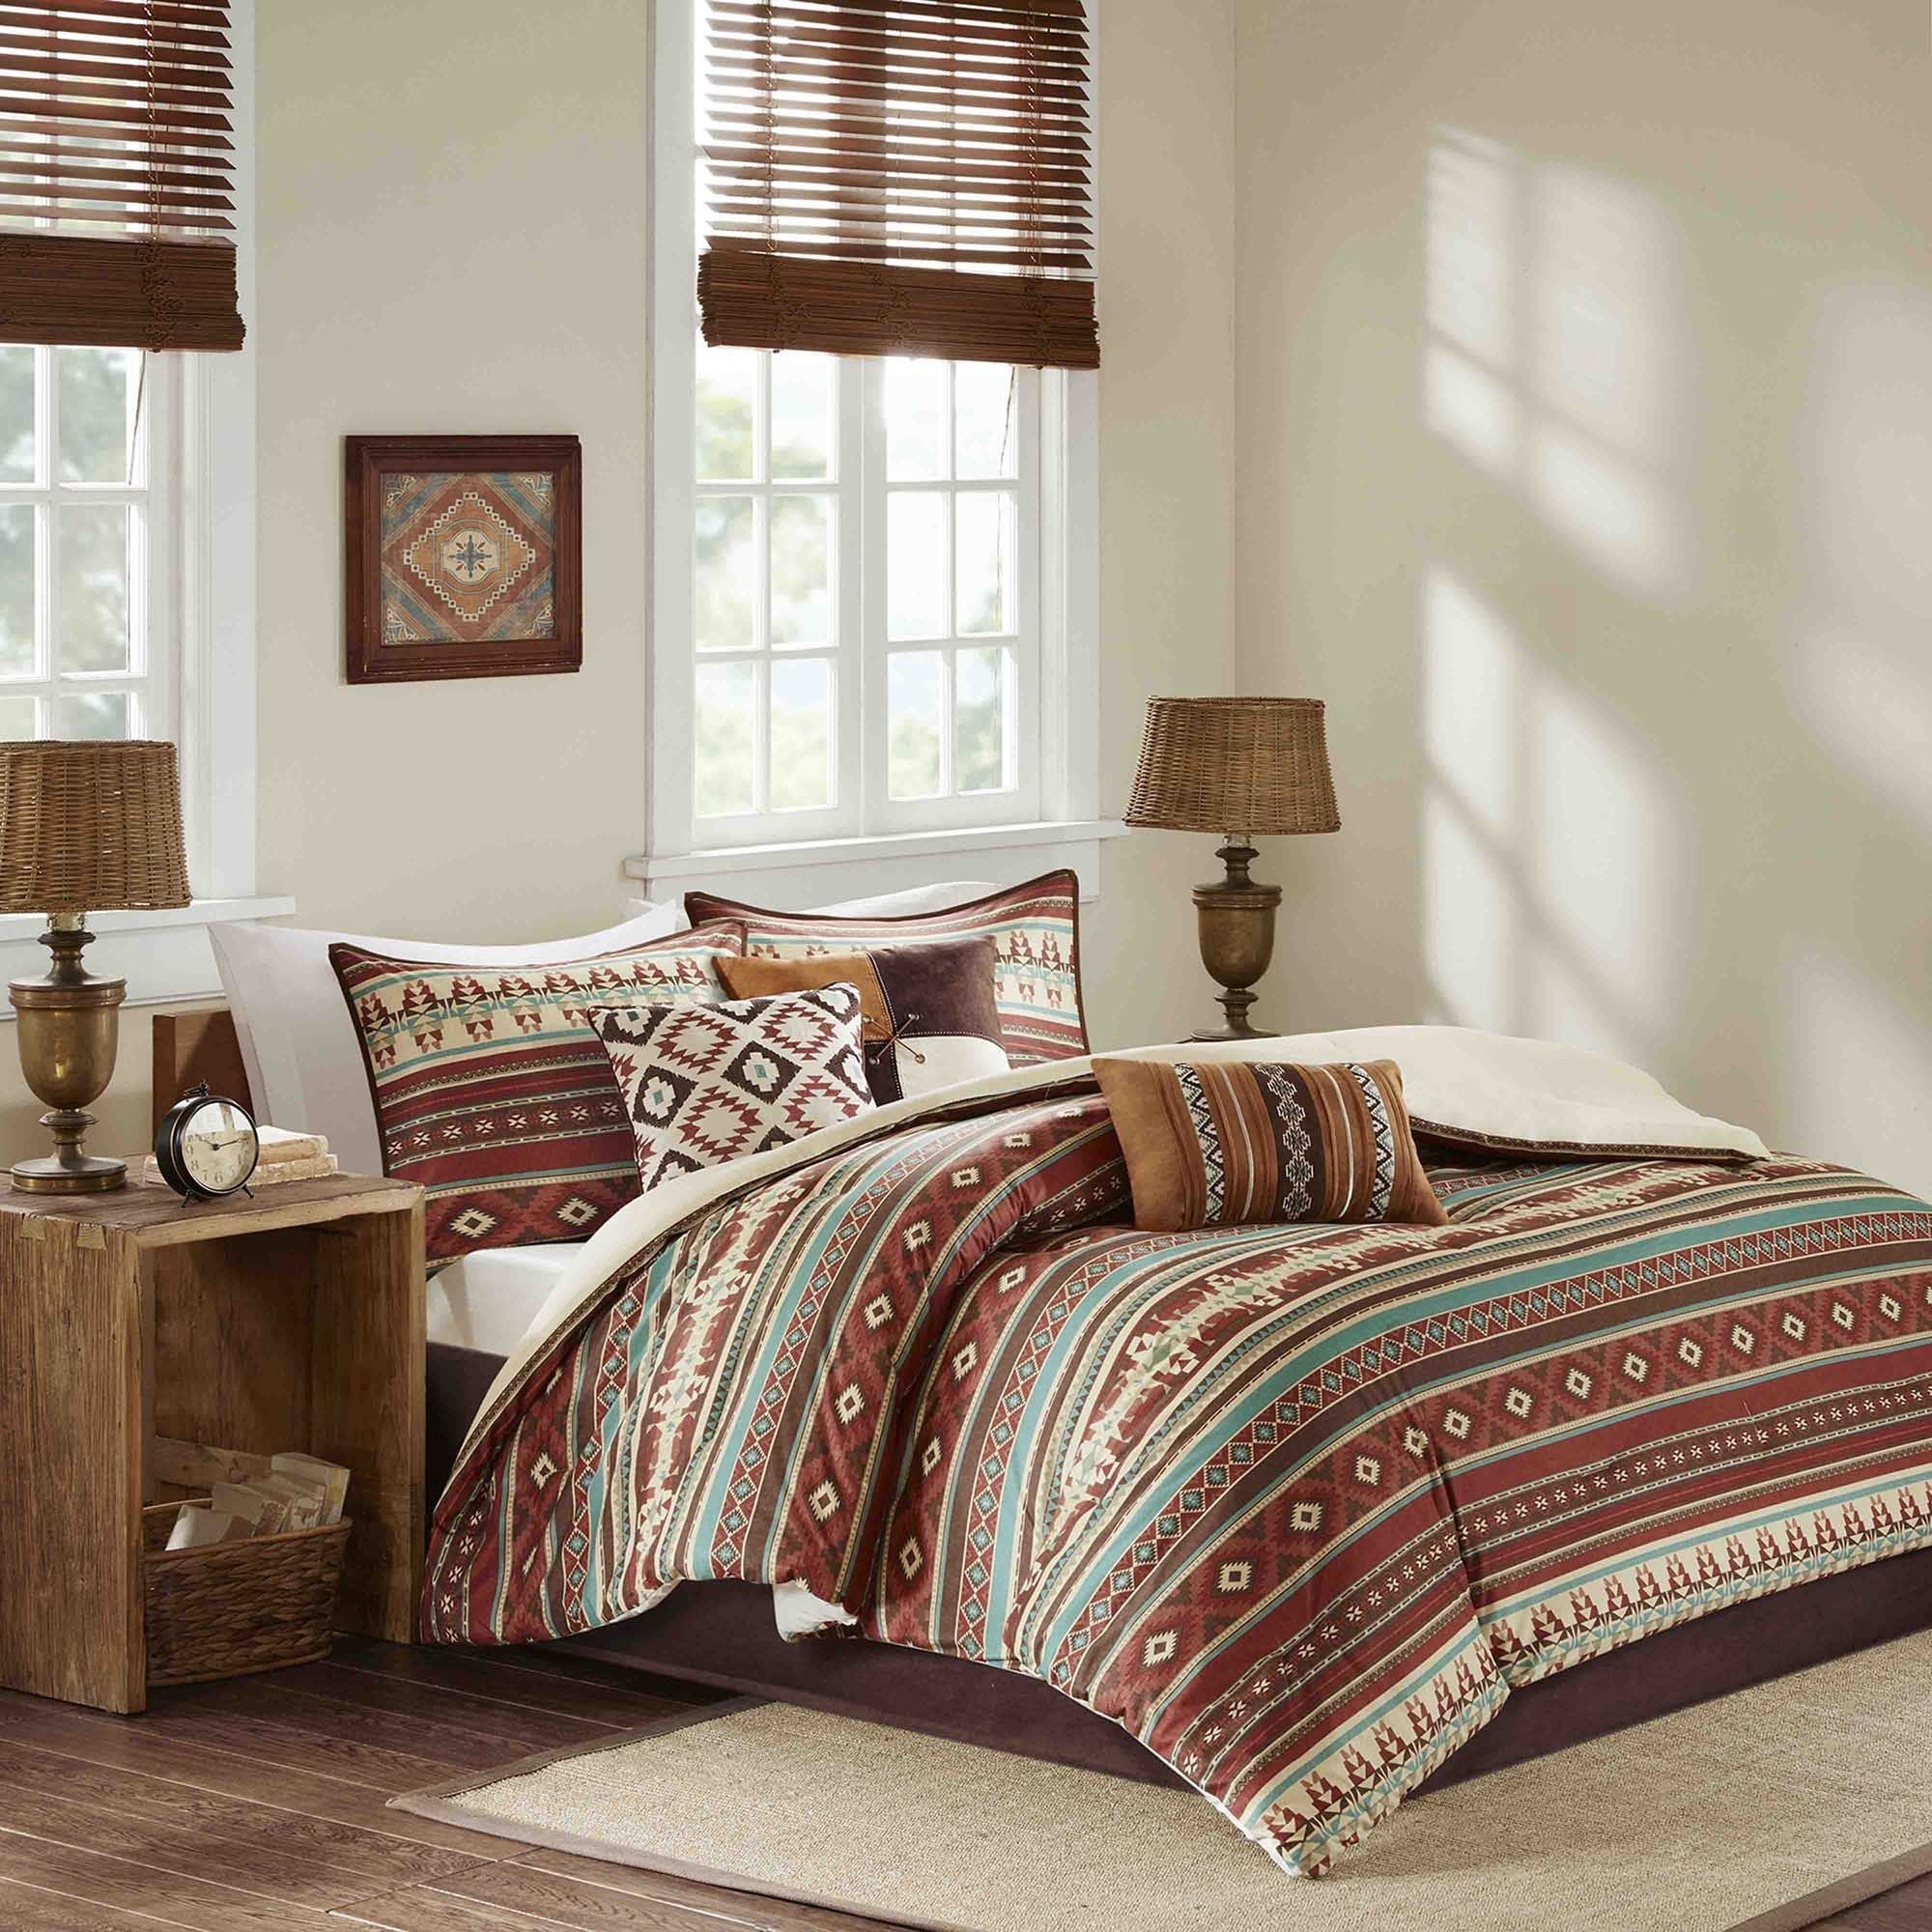 isabella orders bed set bath white product overstock com on free comforter bedding madison shipping park